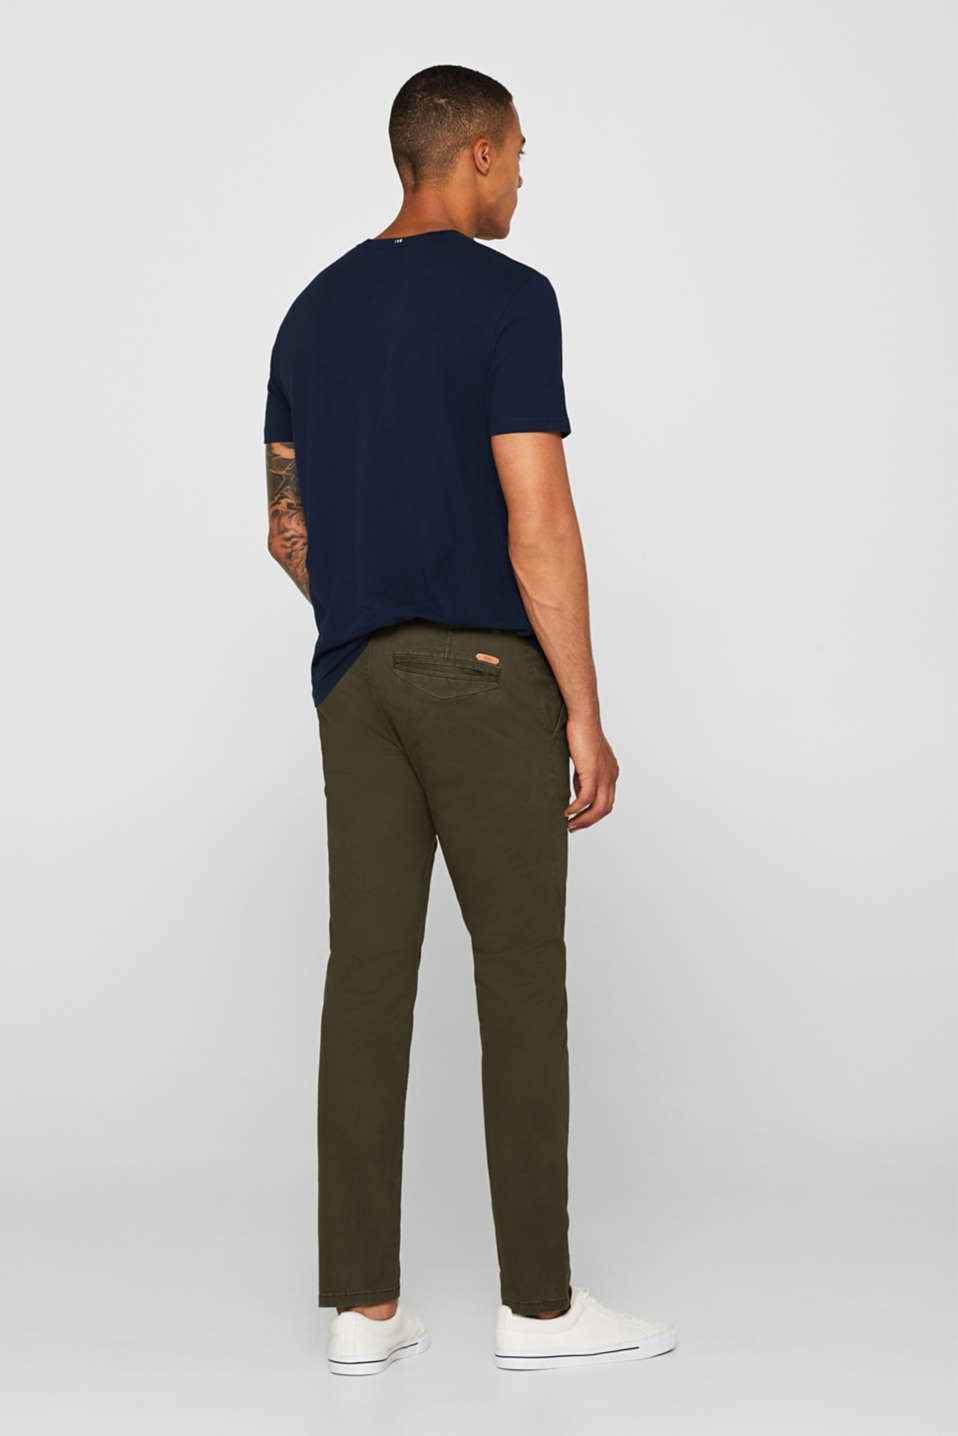 Trousers with a belt, stretch cotton, DARK KHAKI, detail image number 3